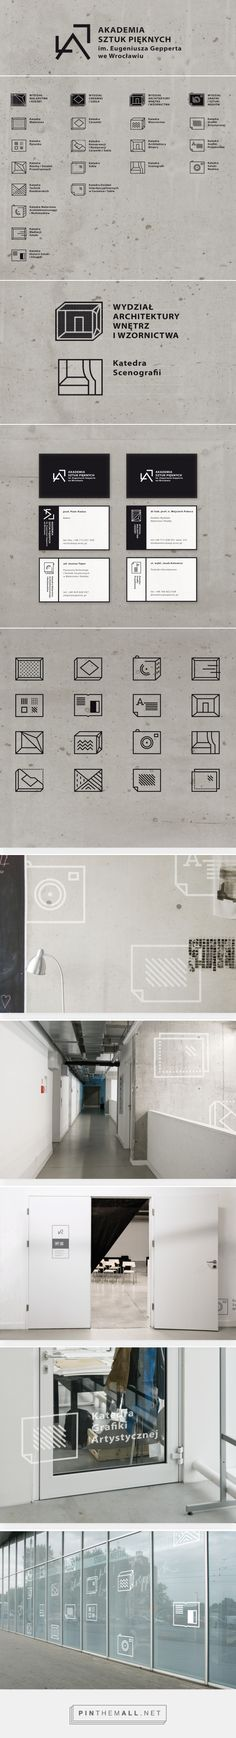 Logo and icon set for the Academy of Art and Design on Behance - created via https://pinthemall.net